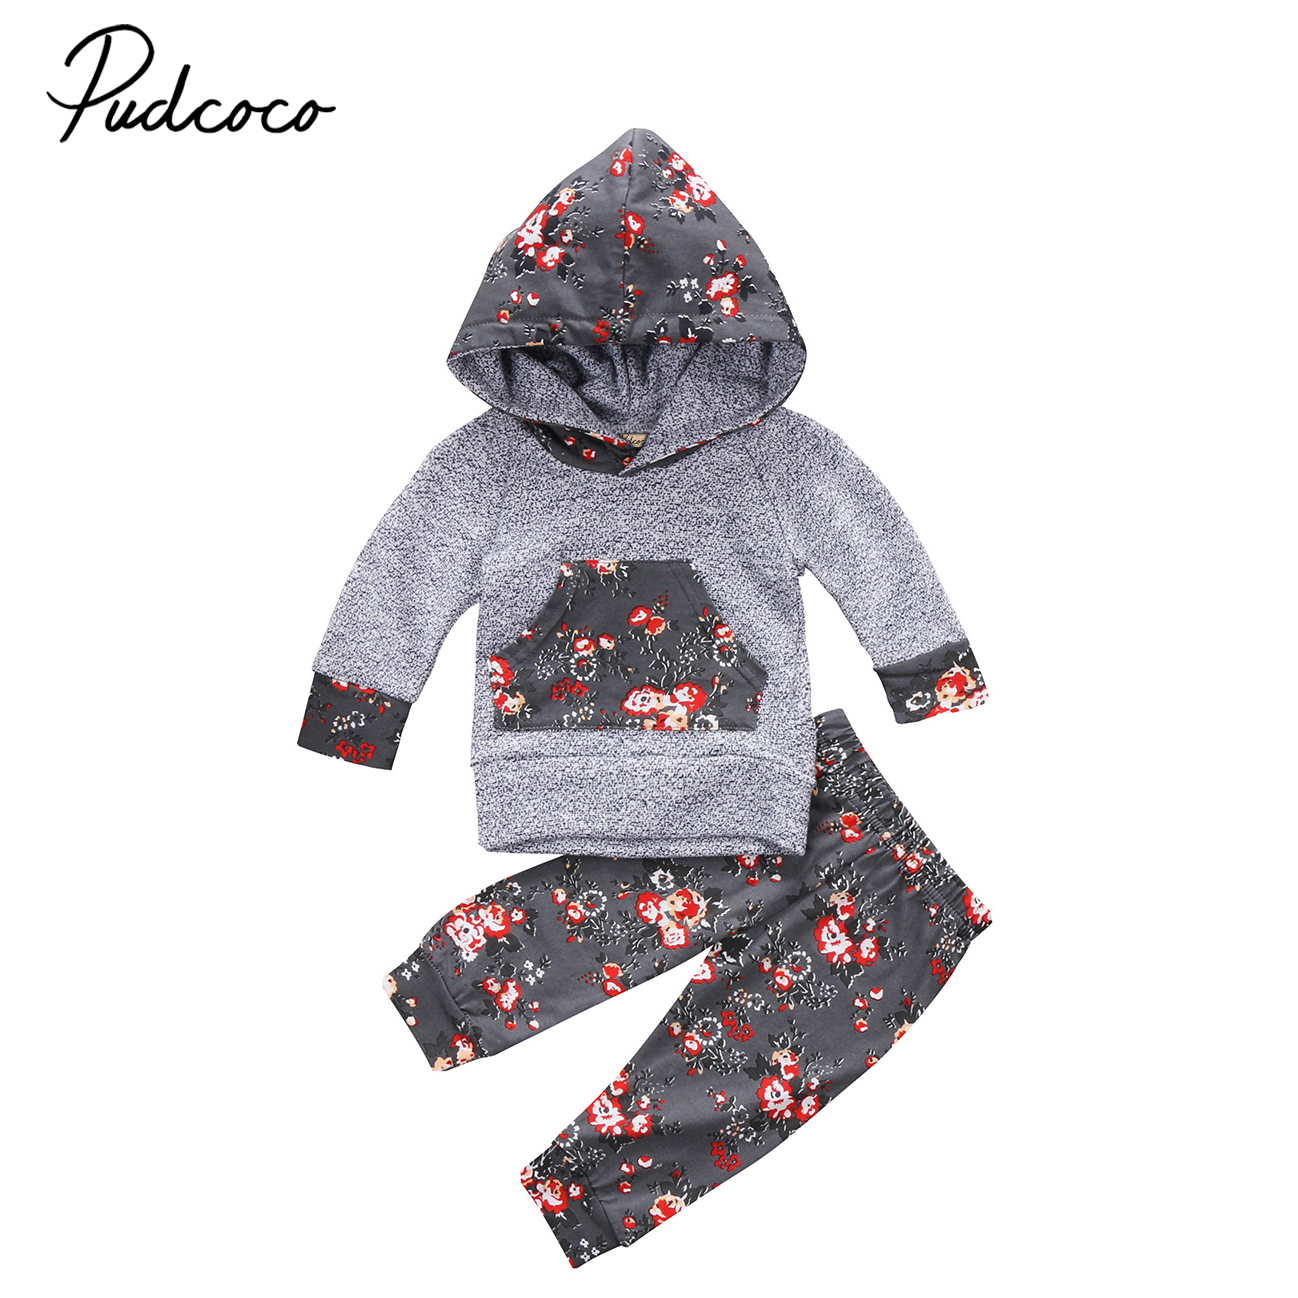 Autumn Newborn Infant Baby Boy Girl Clothes Set Hooded Sweater Coat Tops+Long Pants Leggings 2pcs Outfits